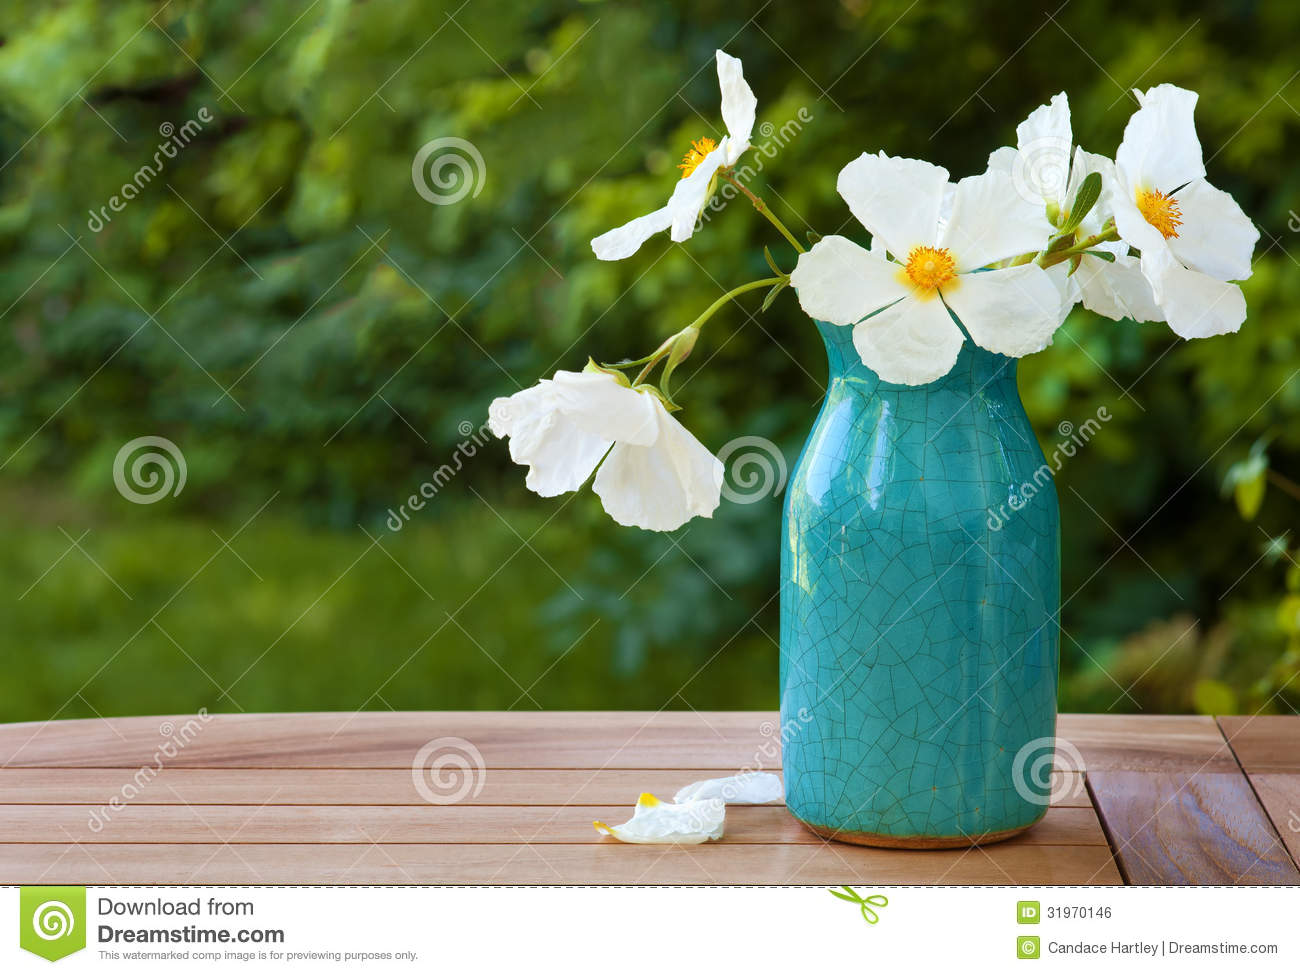 White Rock Rose Blossoms In A Blue Crazed Vase On Wooden ...